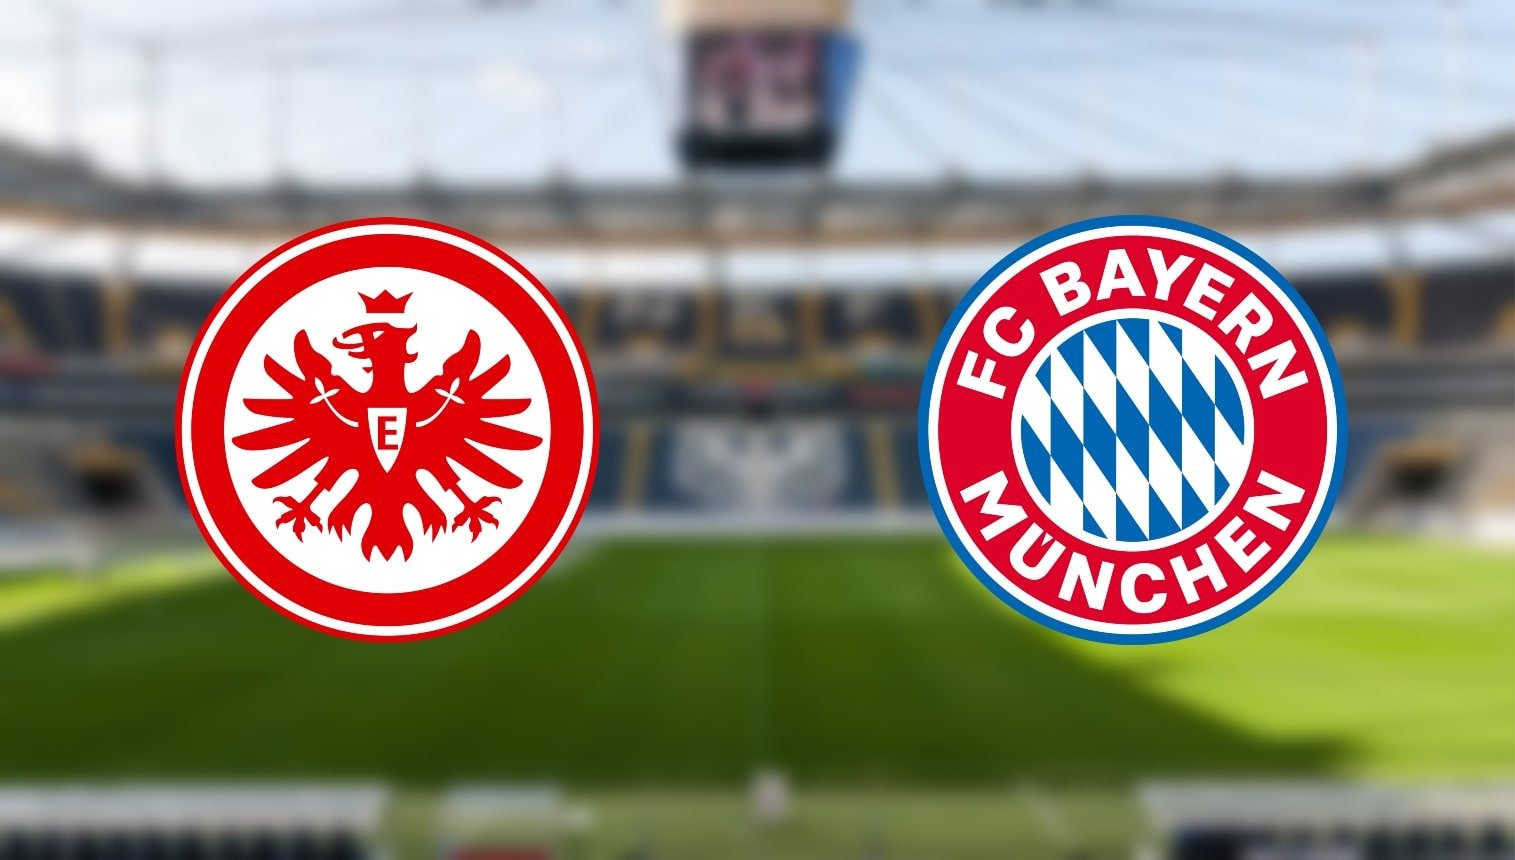 Eintracht Frankfurt vs Bayern Munich Prediction: Bundesliga Match, 02.11